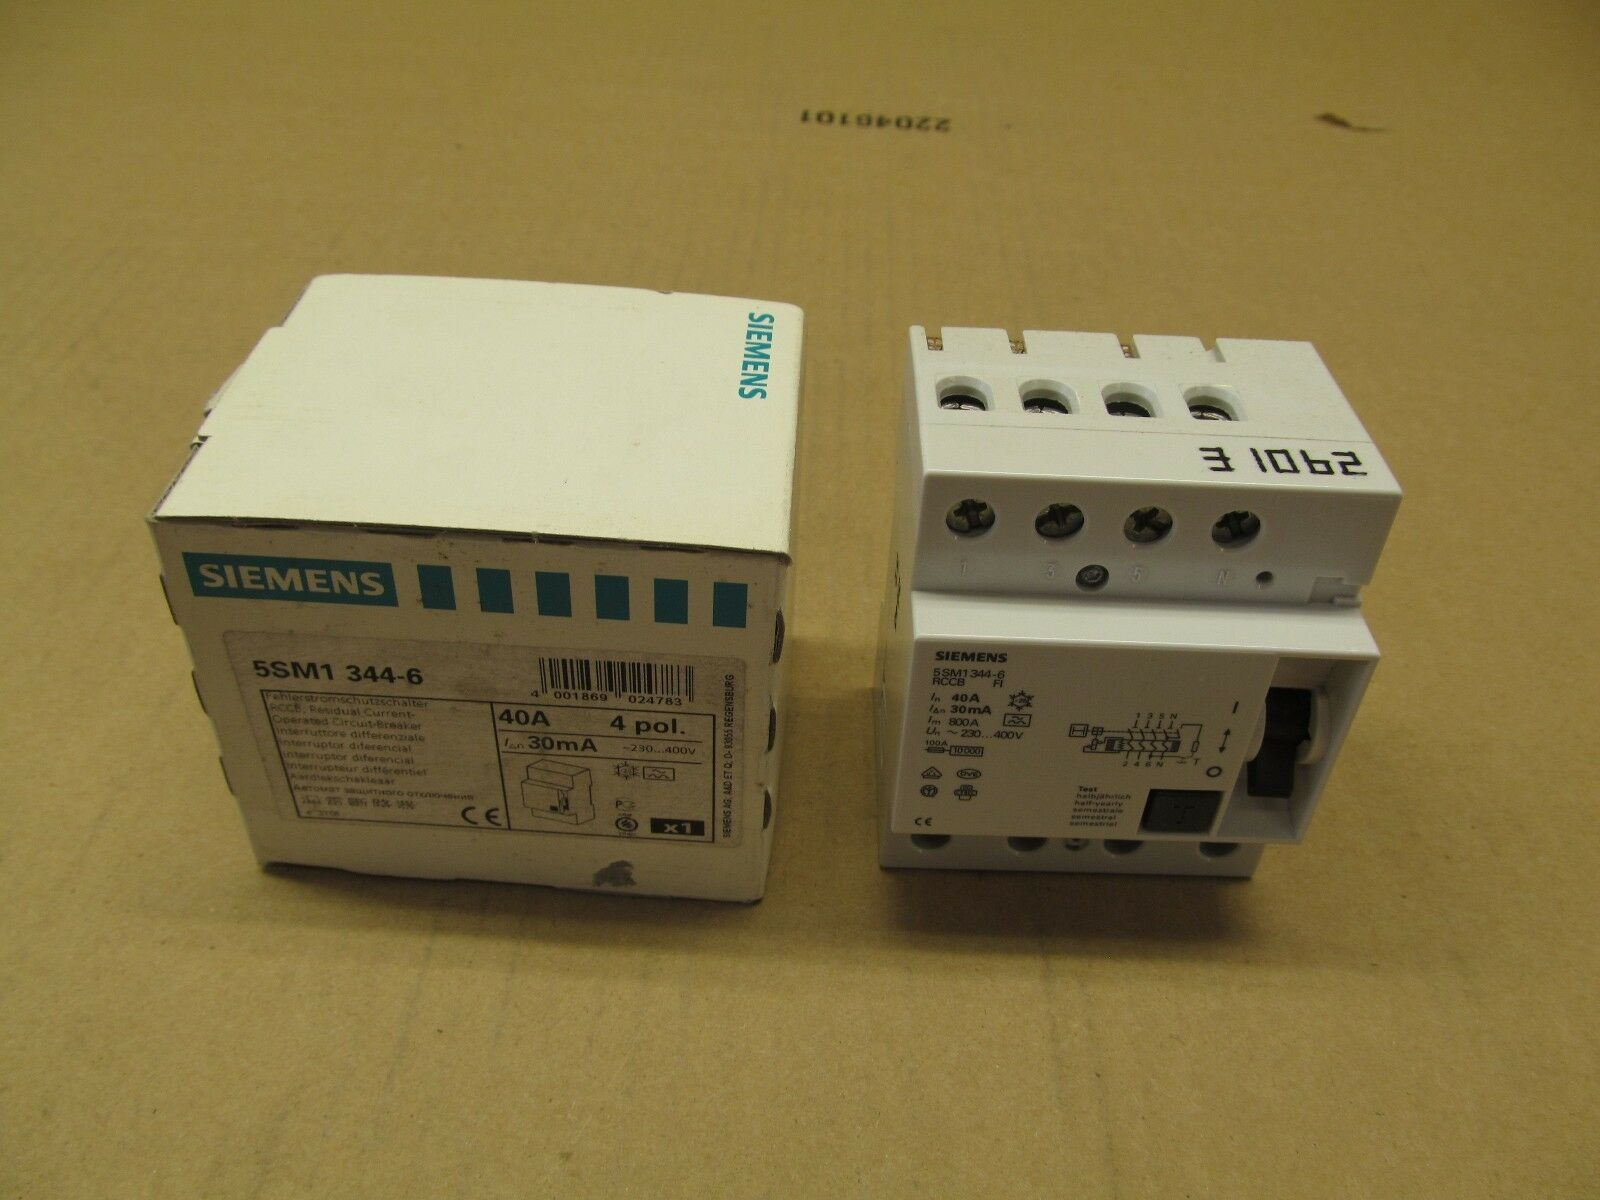 Siemens 5sm1344 6 Fi Switch 40a 30ma Circuit Breaker Ebay Used Breakers Ite E43b060 60 Amp 3 Pole Norton Secured Powered By Verisign